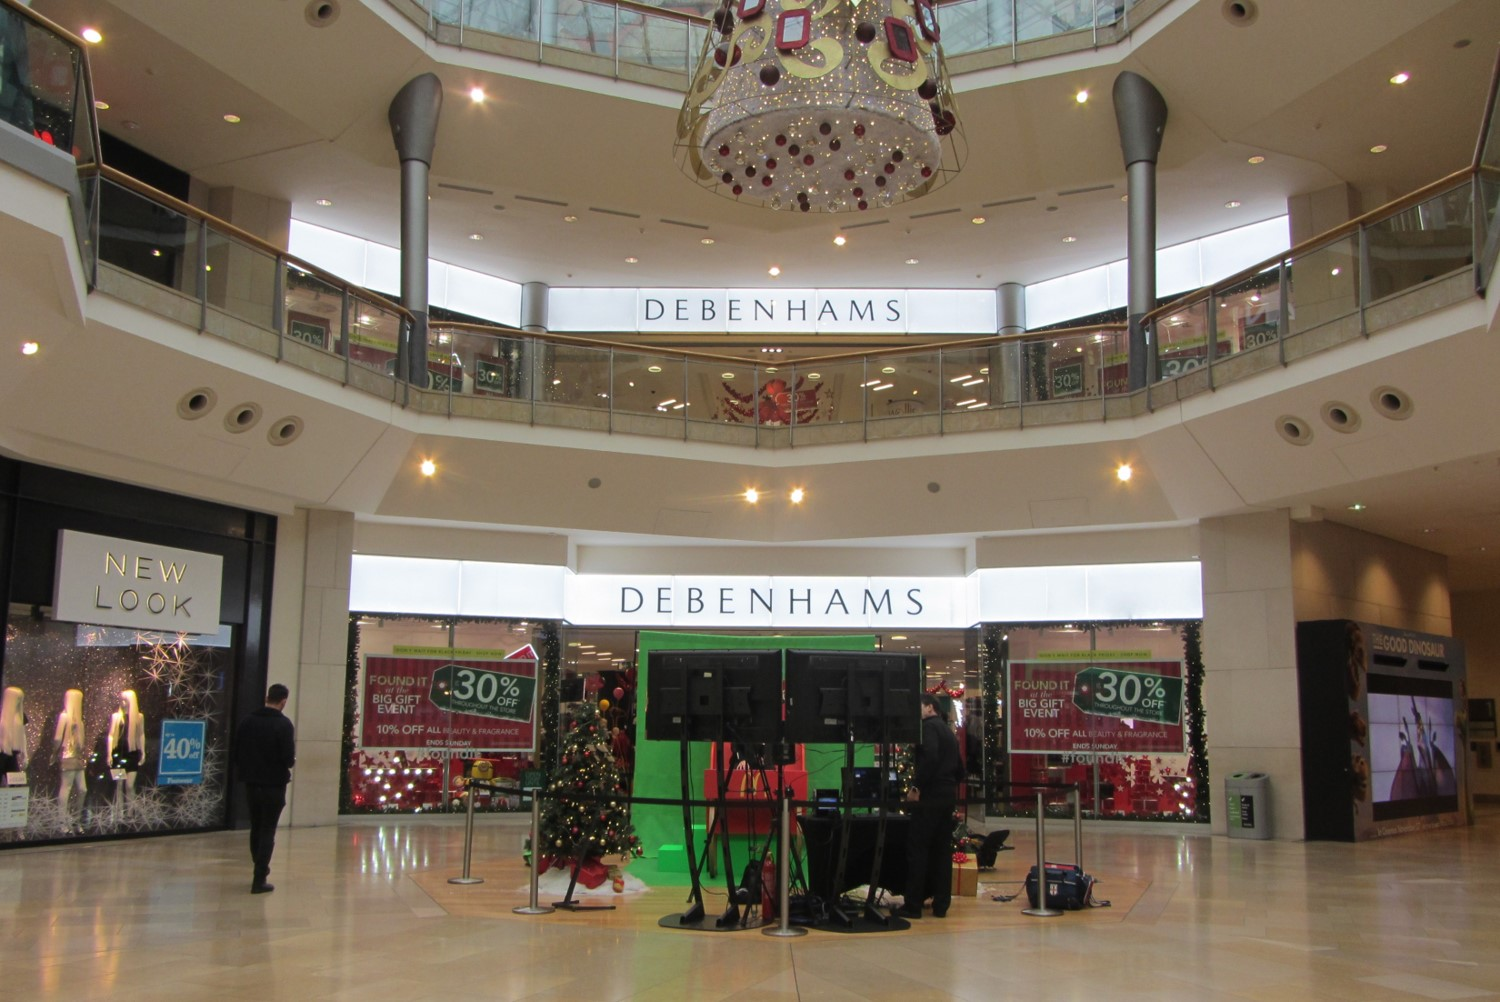 LED retail illumination